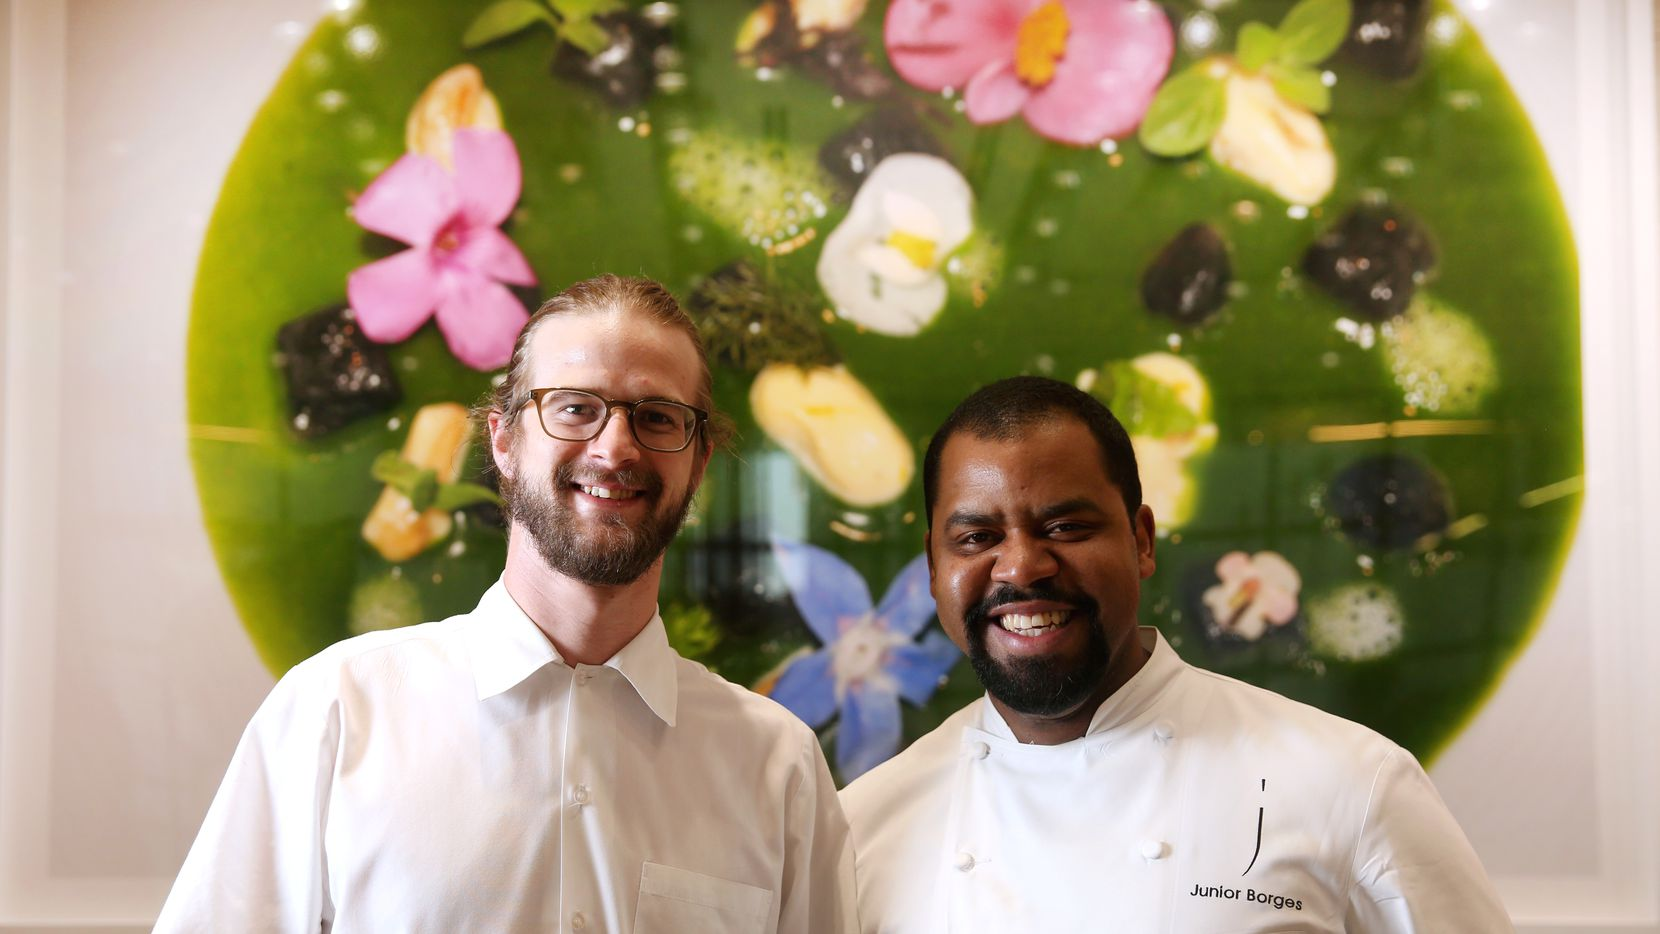 Mirador executive chefs Josh Sutcliff (left) and Junior Borges